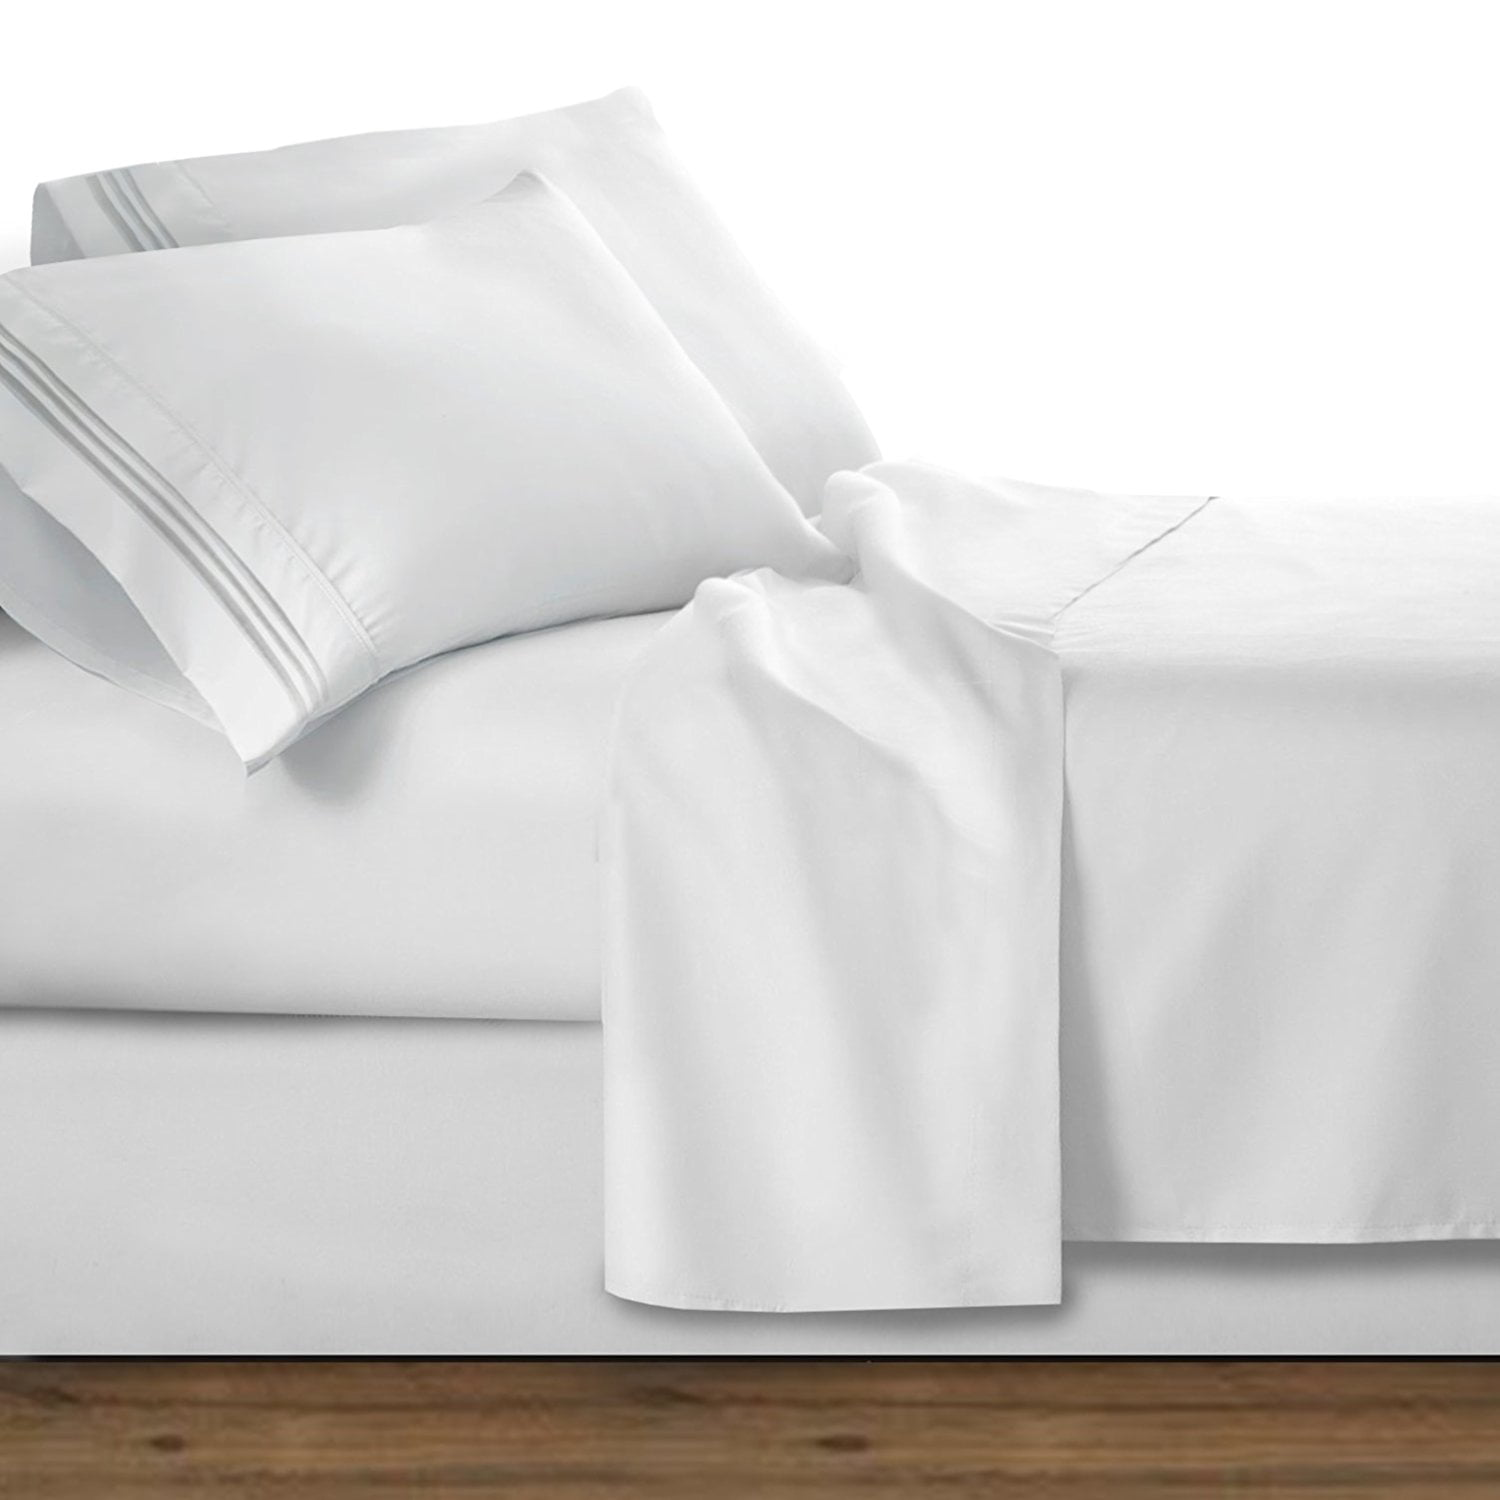 Chain Design 1500 Thread Count Egyptian Quality Wrinkle And Fade Resistant 4 Piece Bed Sheet Set Deep Pocket Hypoallergenic California King White